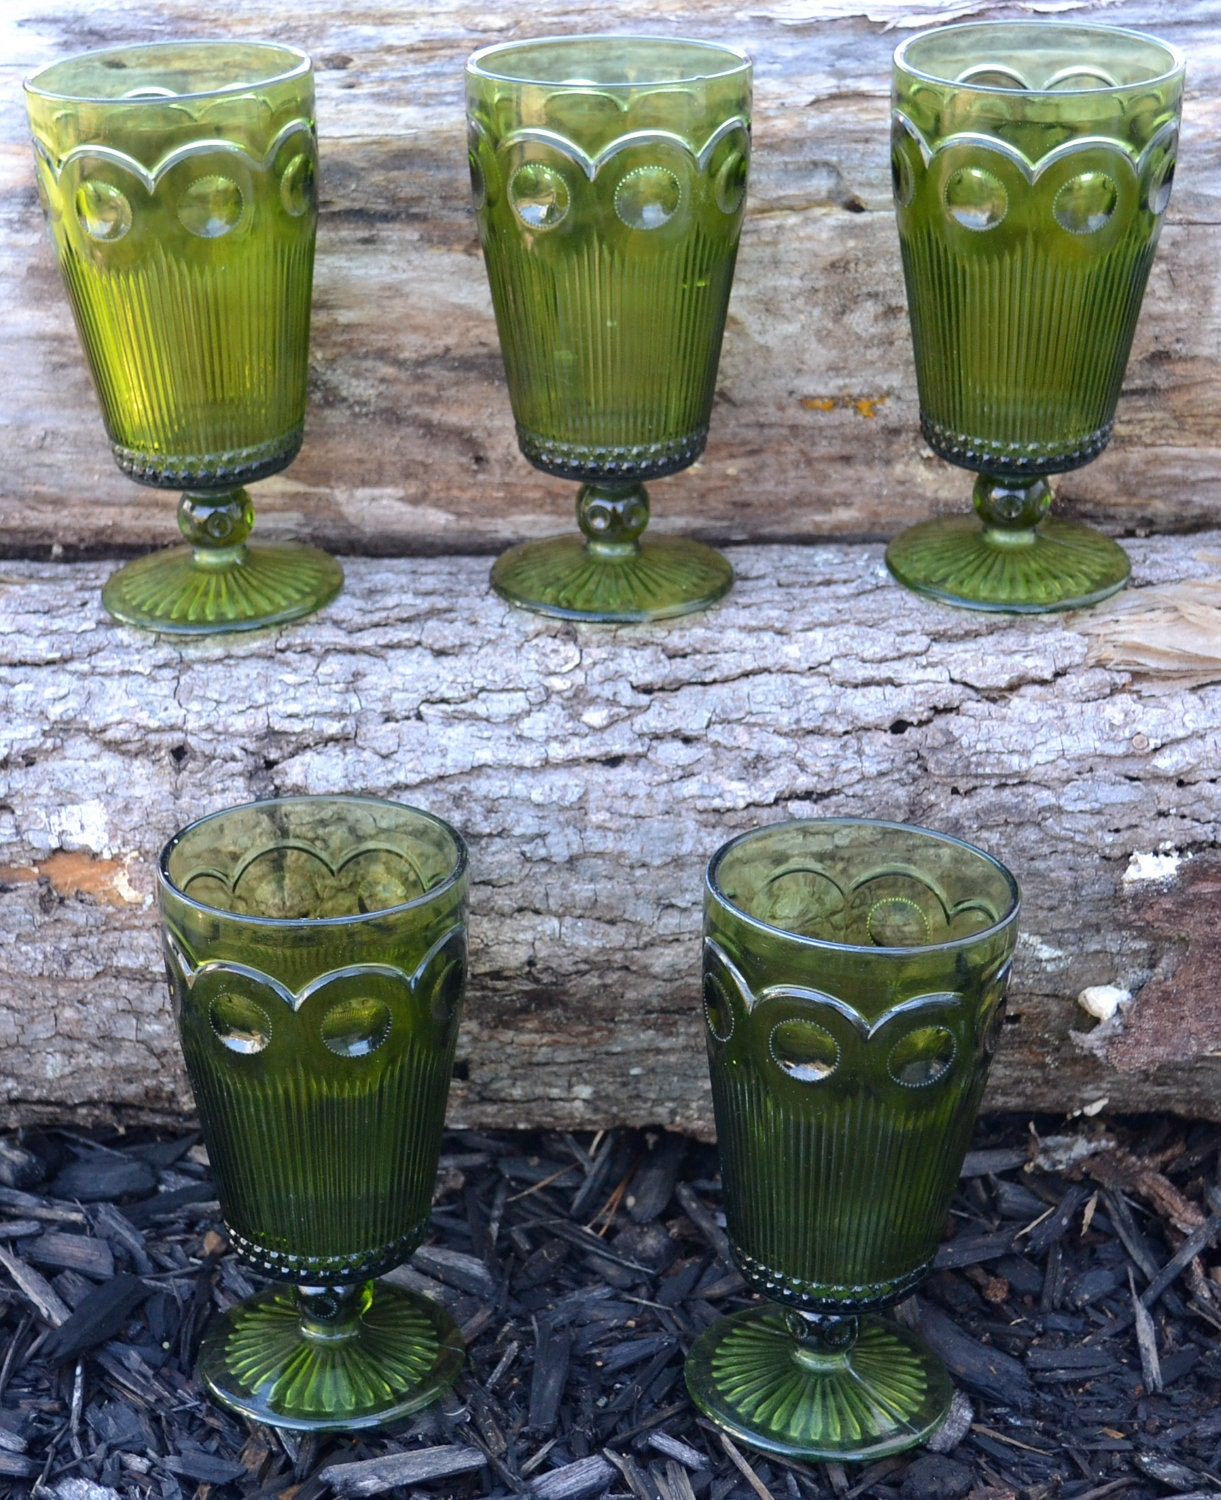 Vintage Green Drinking Glasses By Artbyjuliet On Etsy